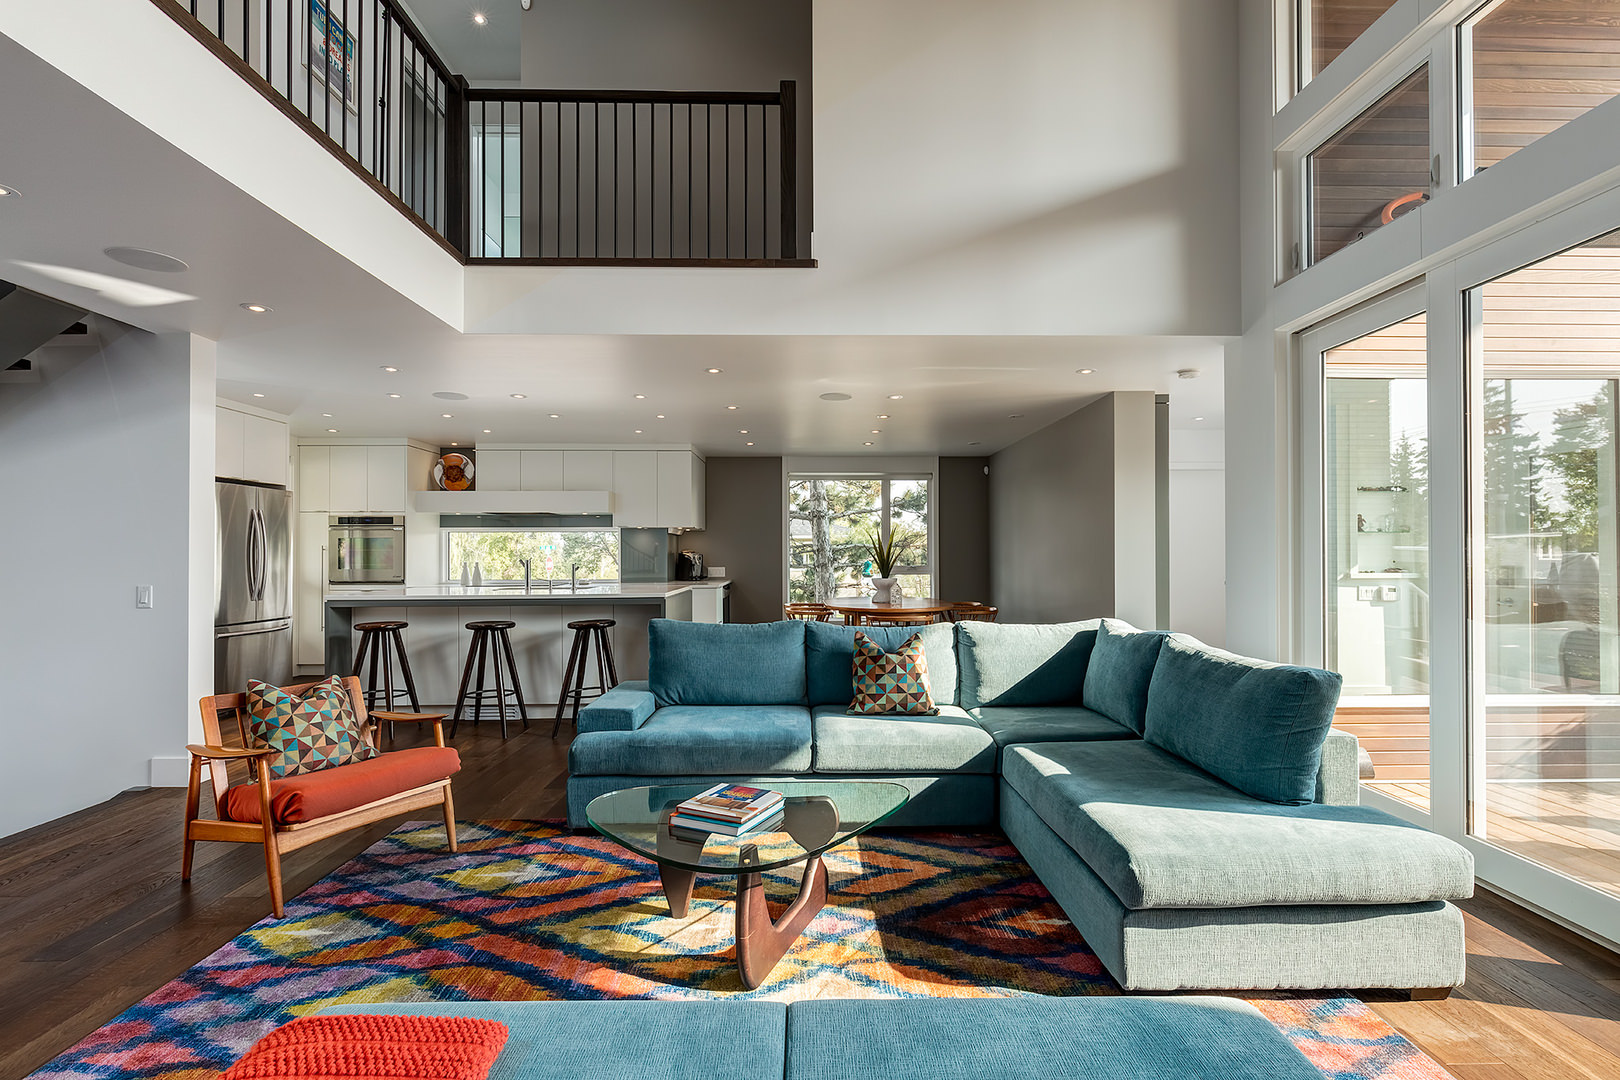 The central living space extends all the way up to the second floor with wooden railings taking a peek over the picture.